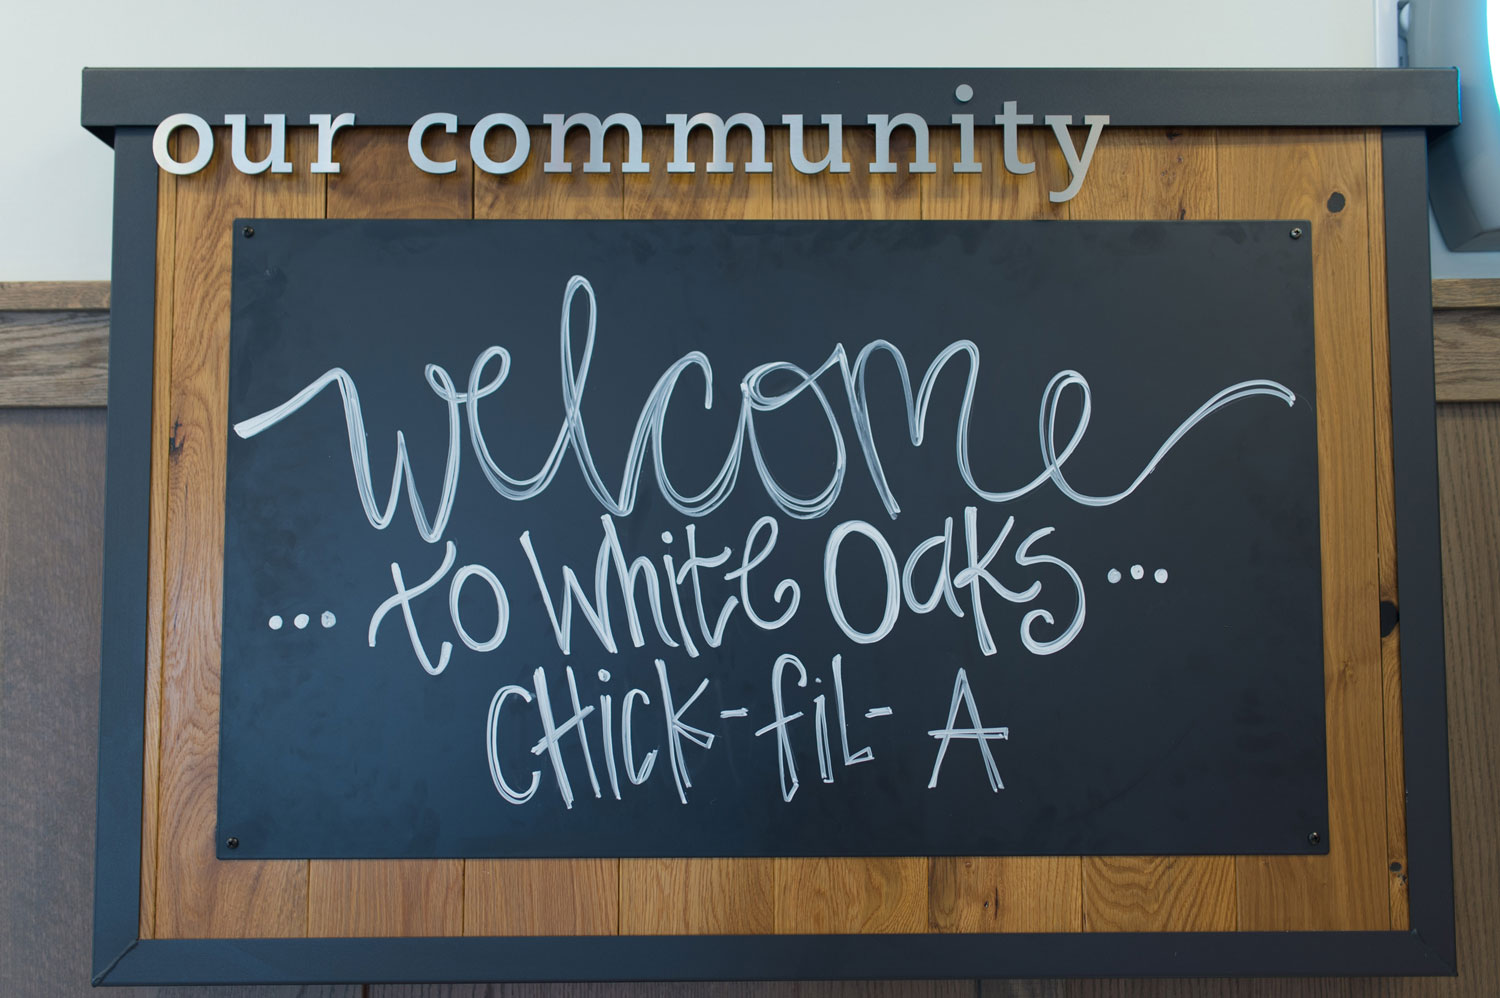 Welcome to White Oaks Chick-fil-A sign